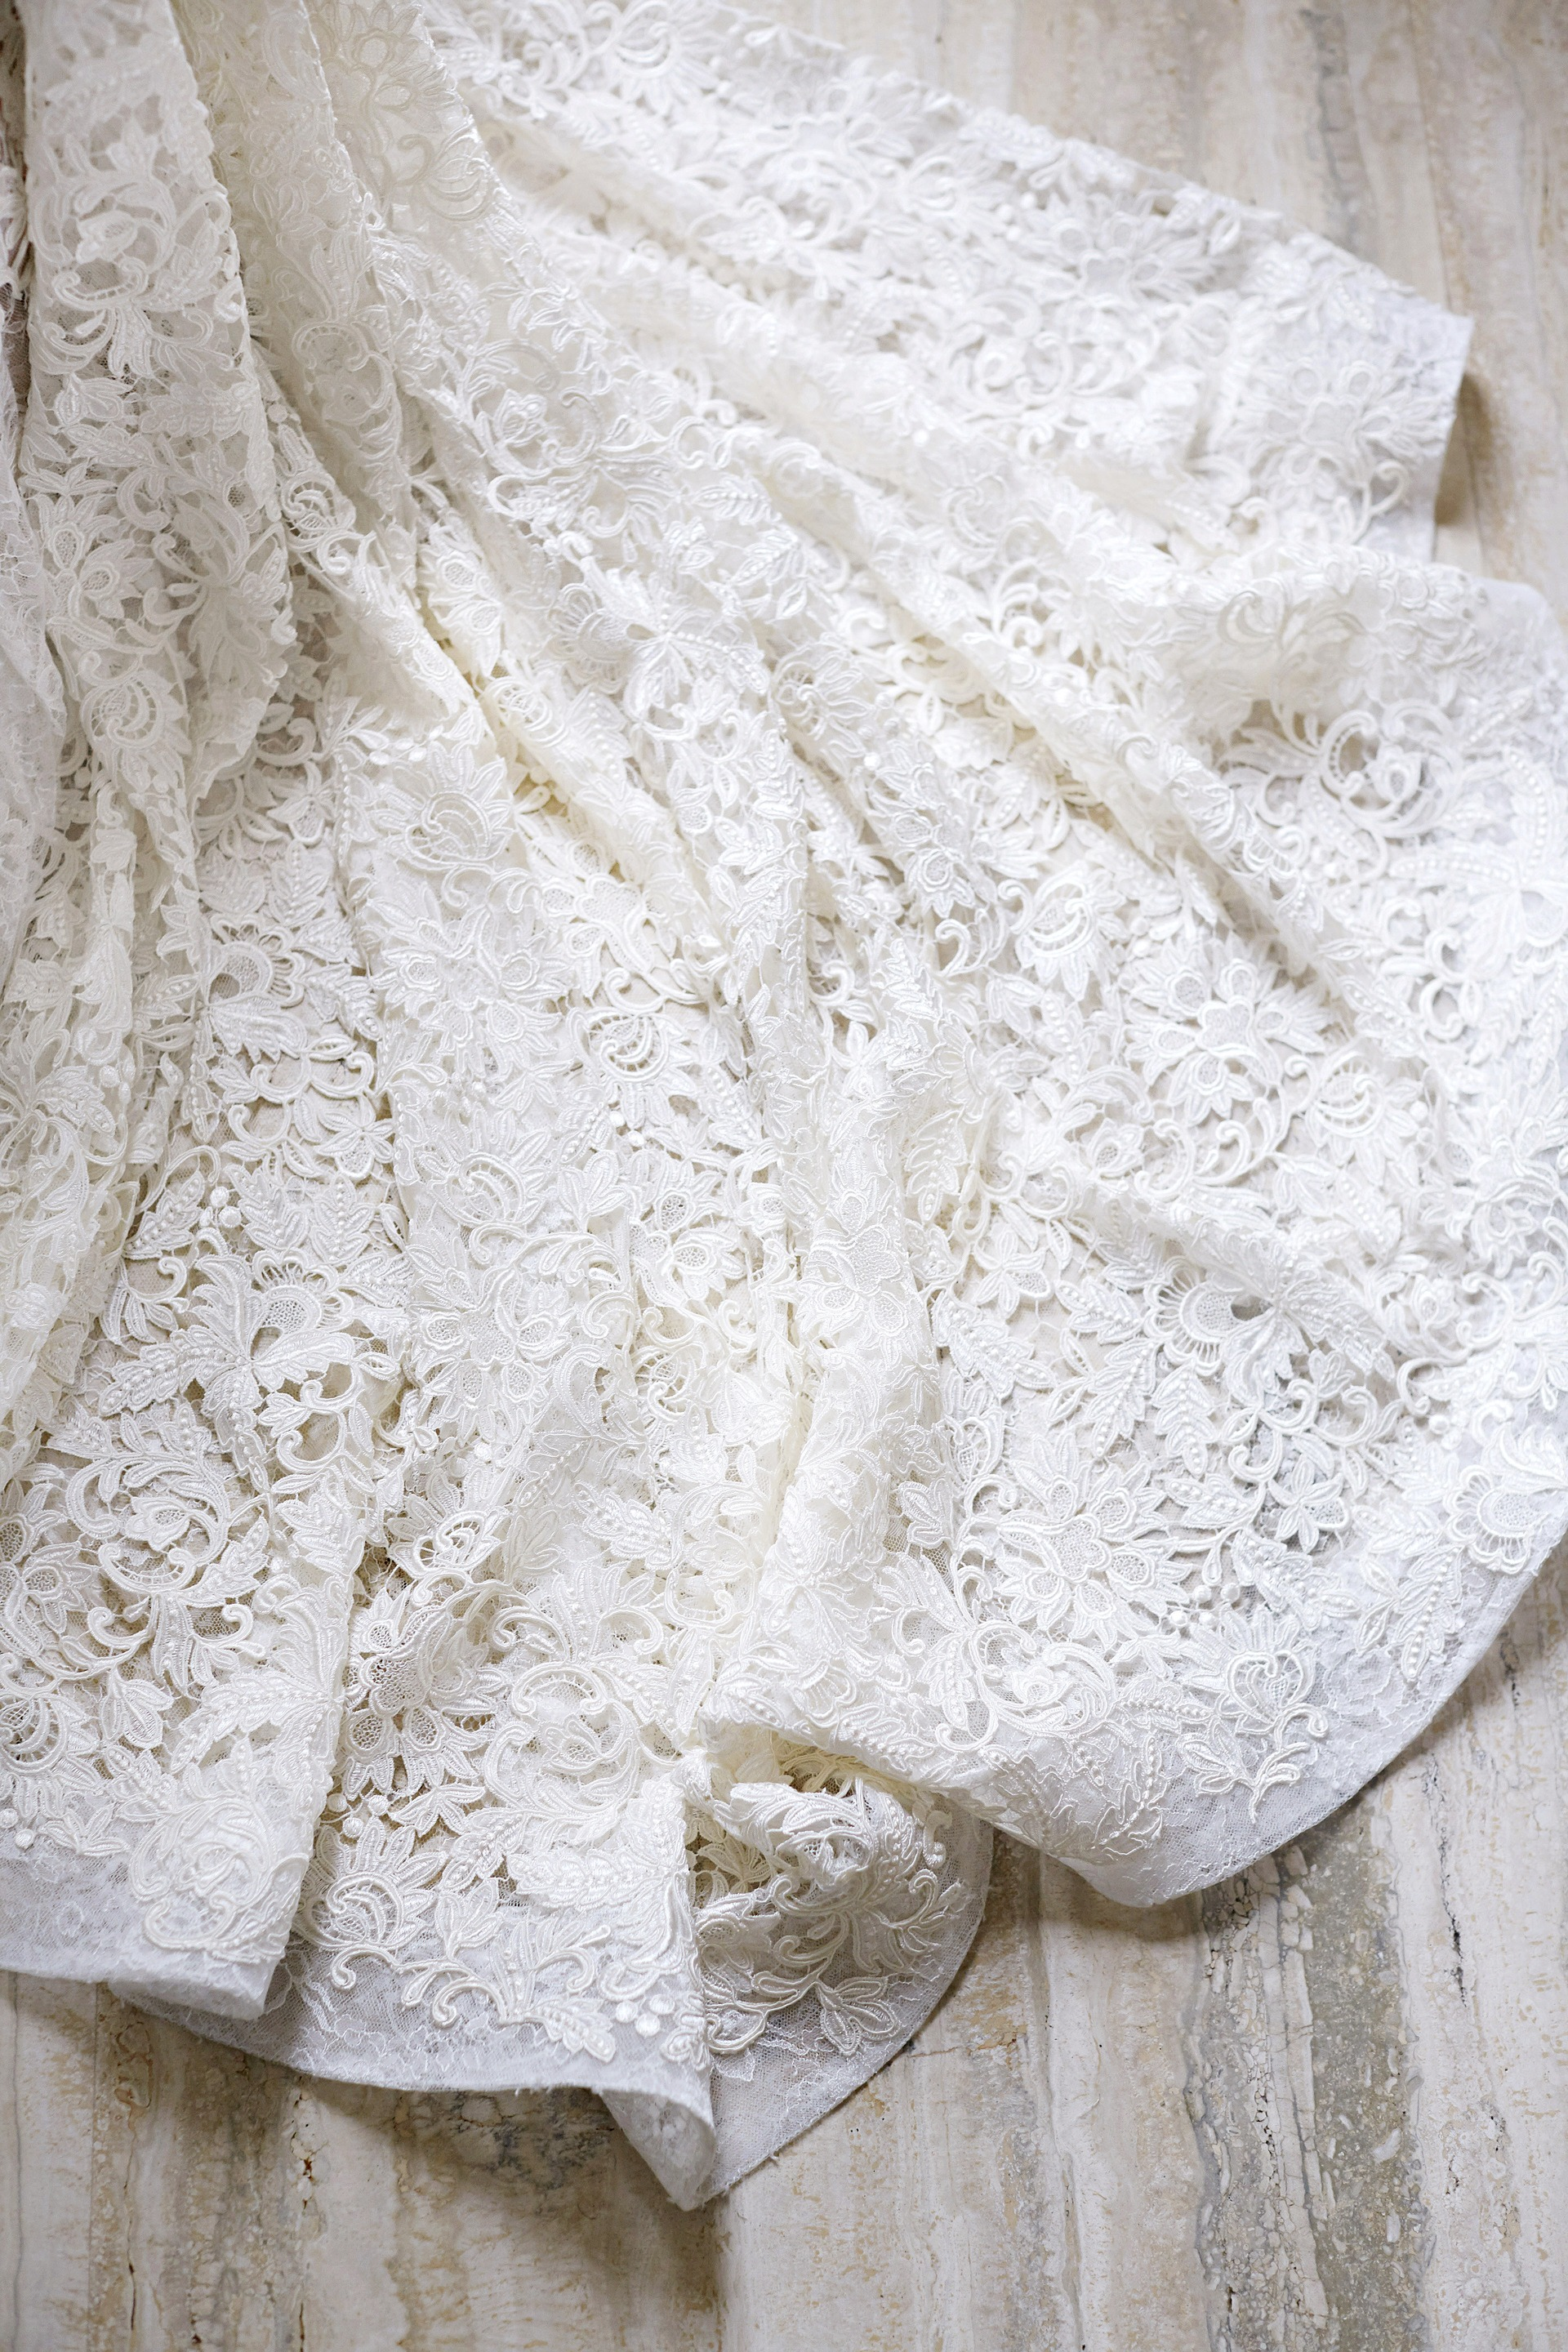 joyann jeremy wedding dress detail